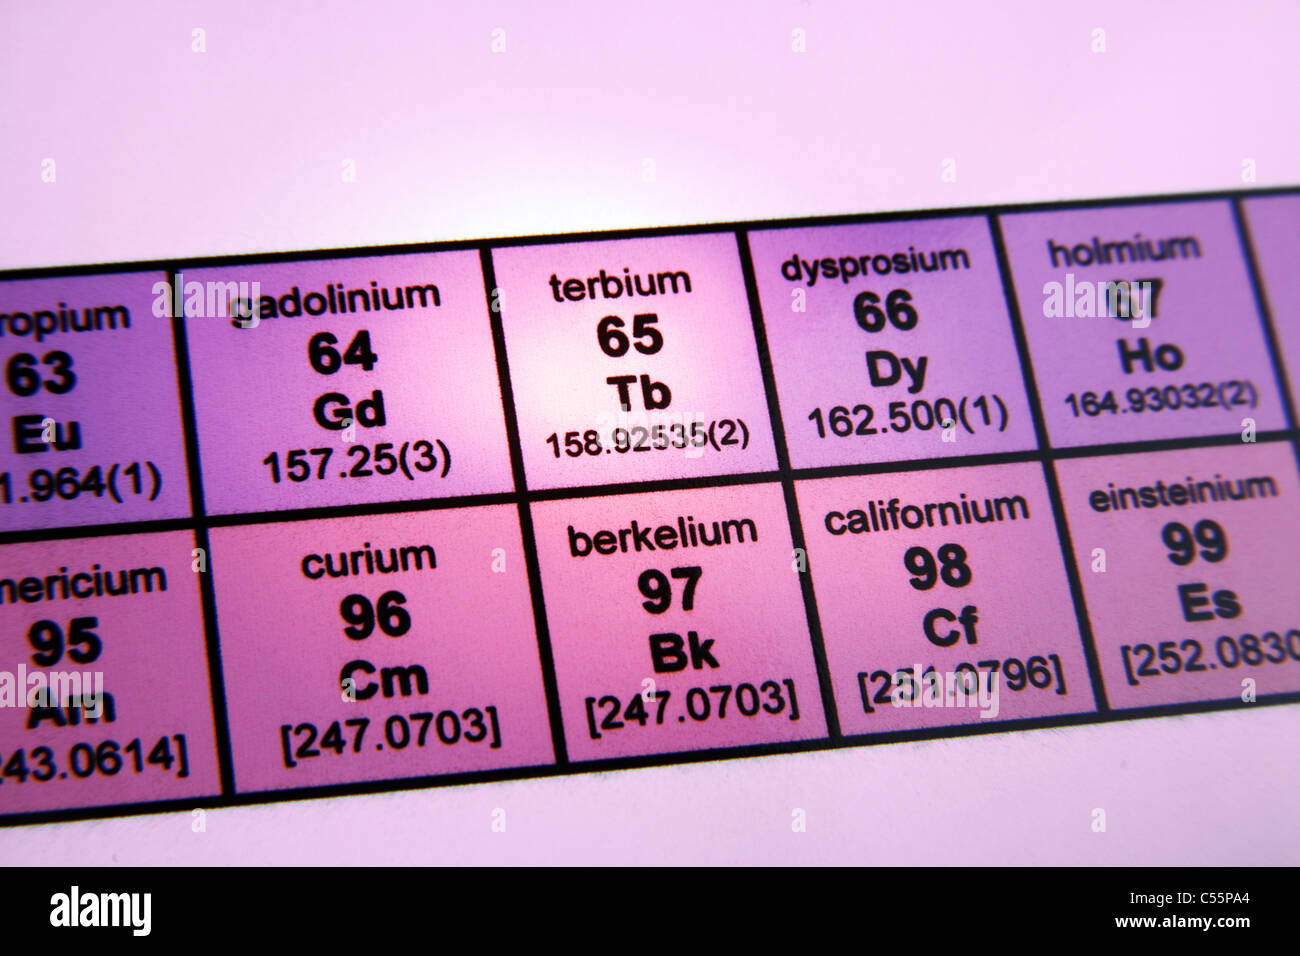 The periodic table of elements rare earth elements focus on the periodic table of elements rare earth elements focus on terbium urtaz Image collections